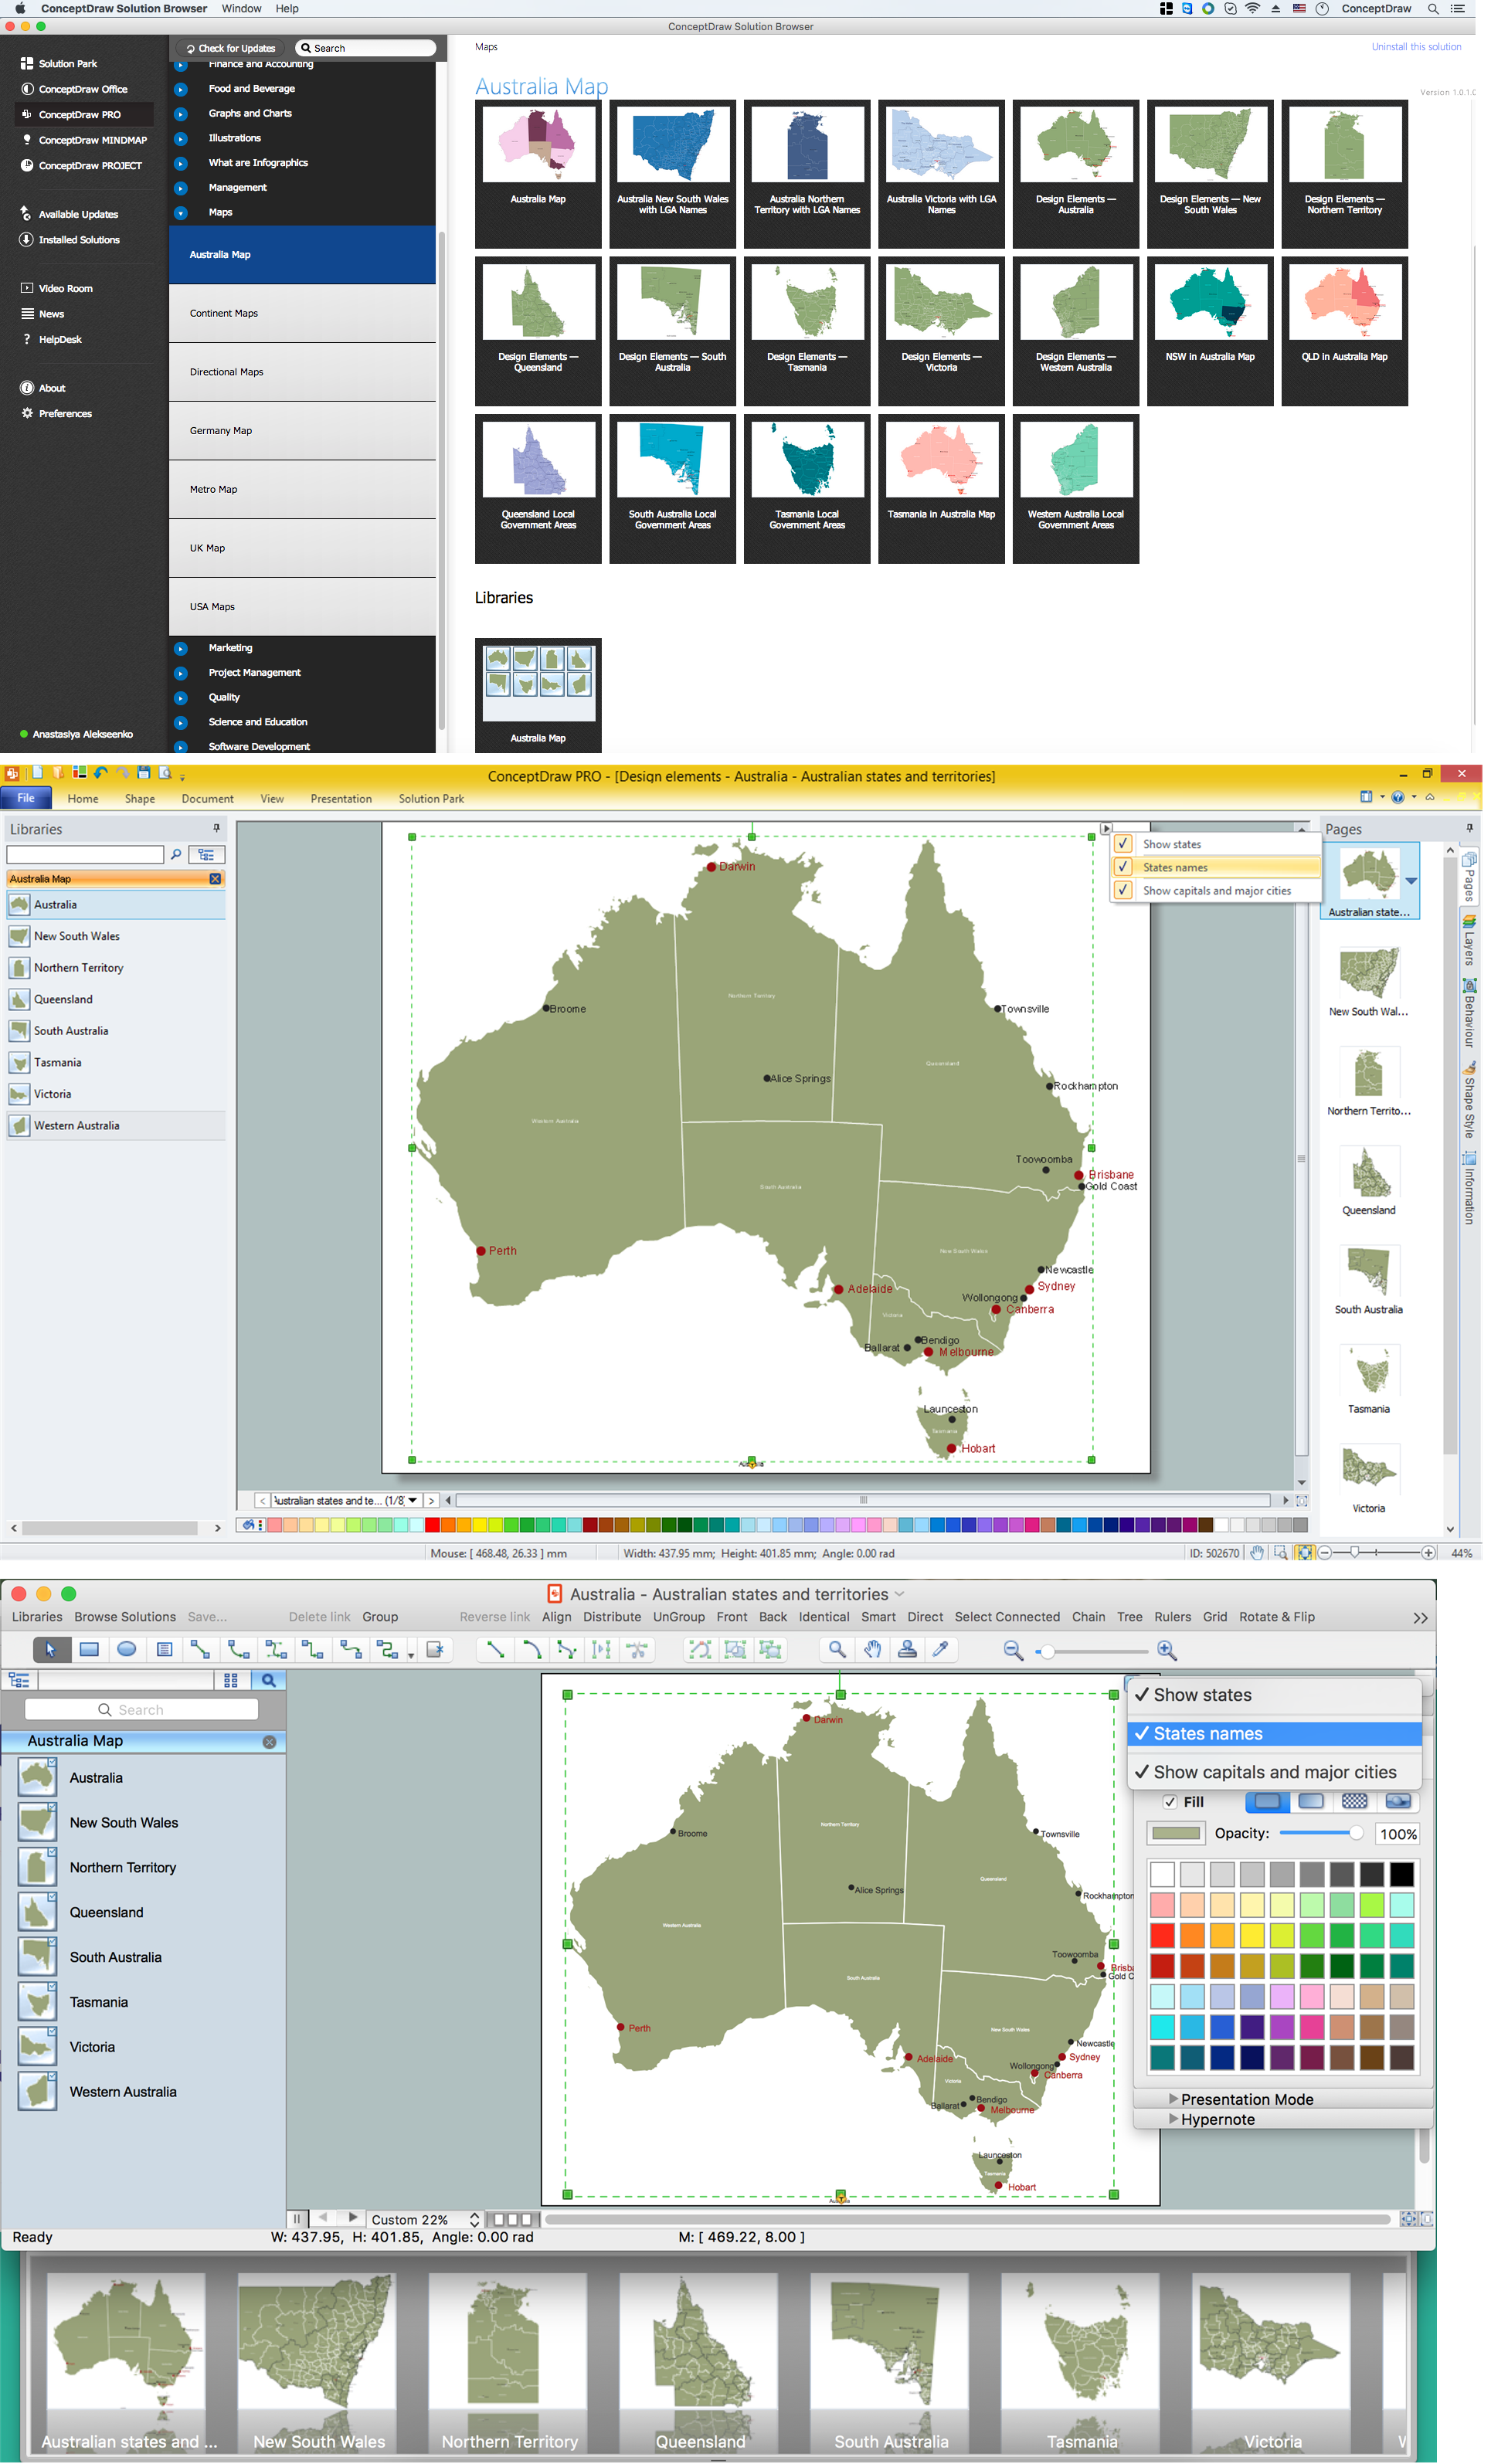 Australia Map States And Cities.Australia Map States And Cities